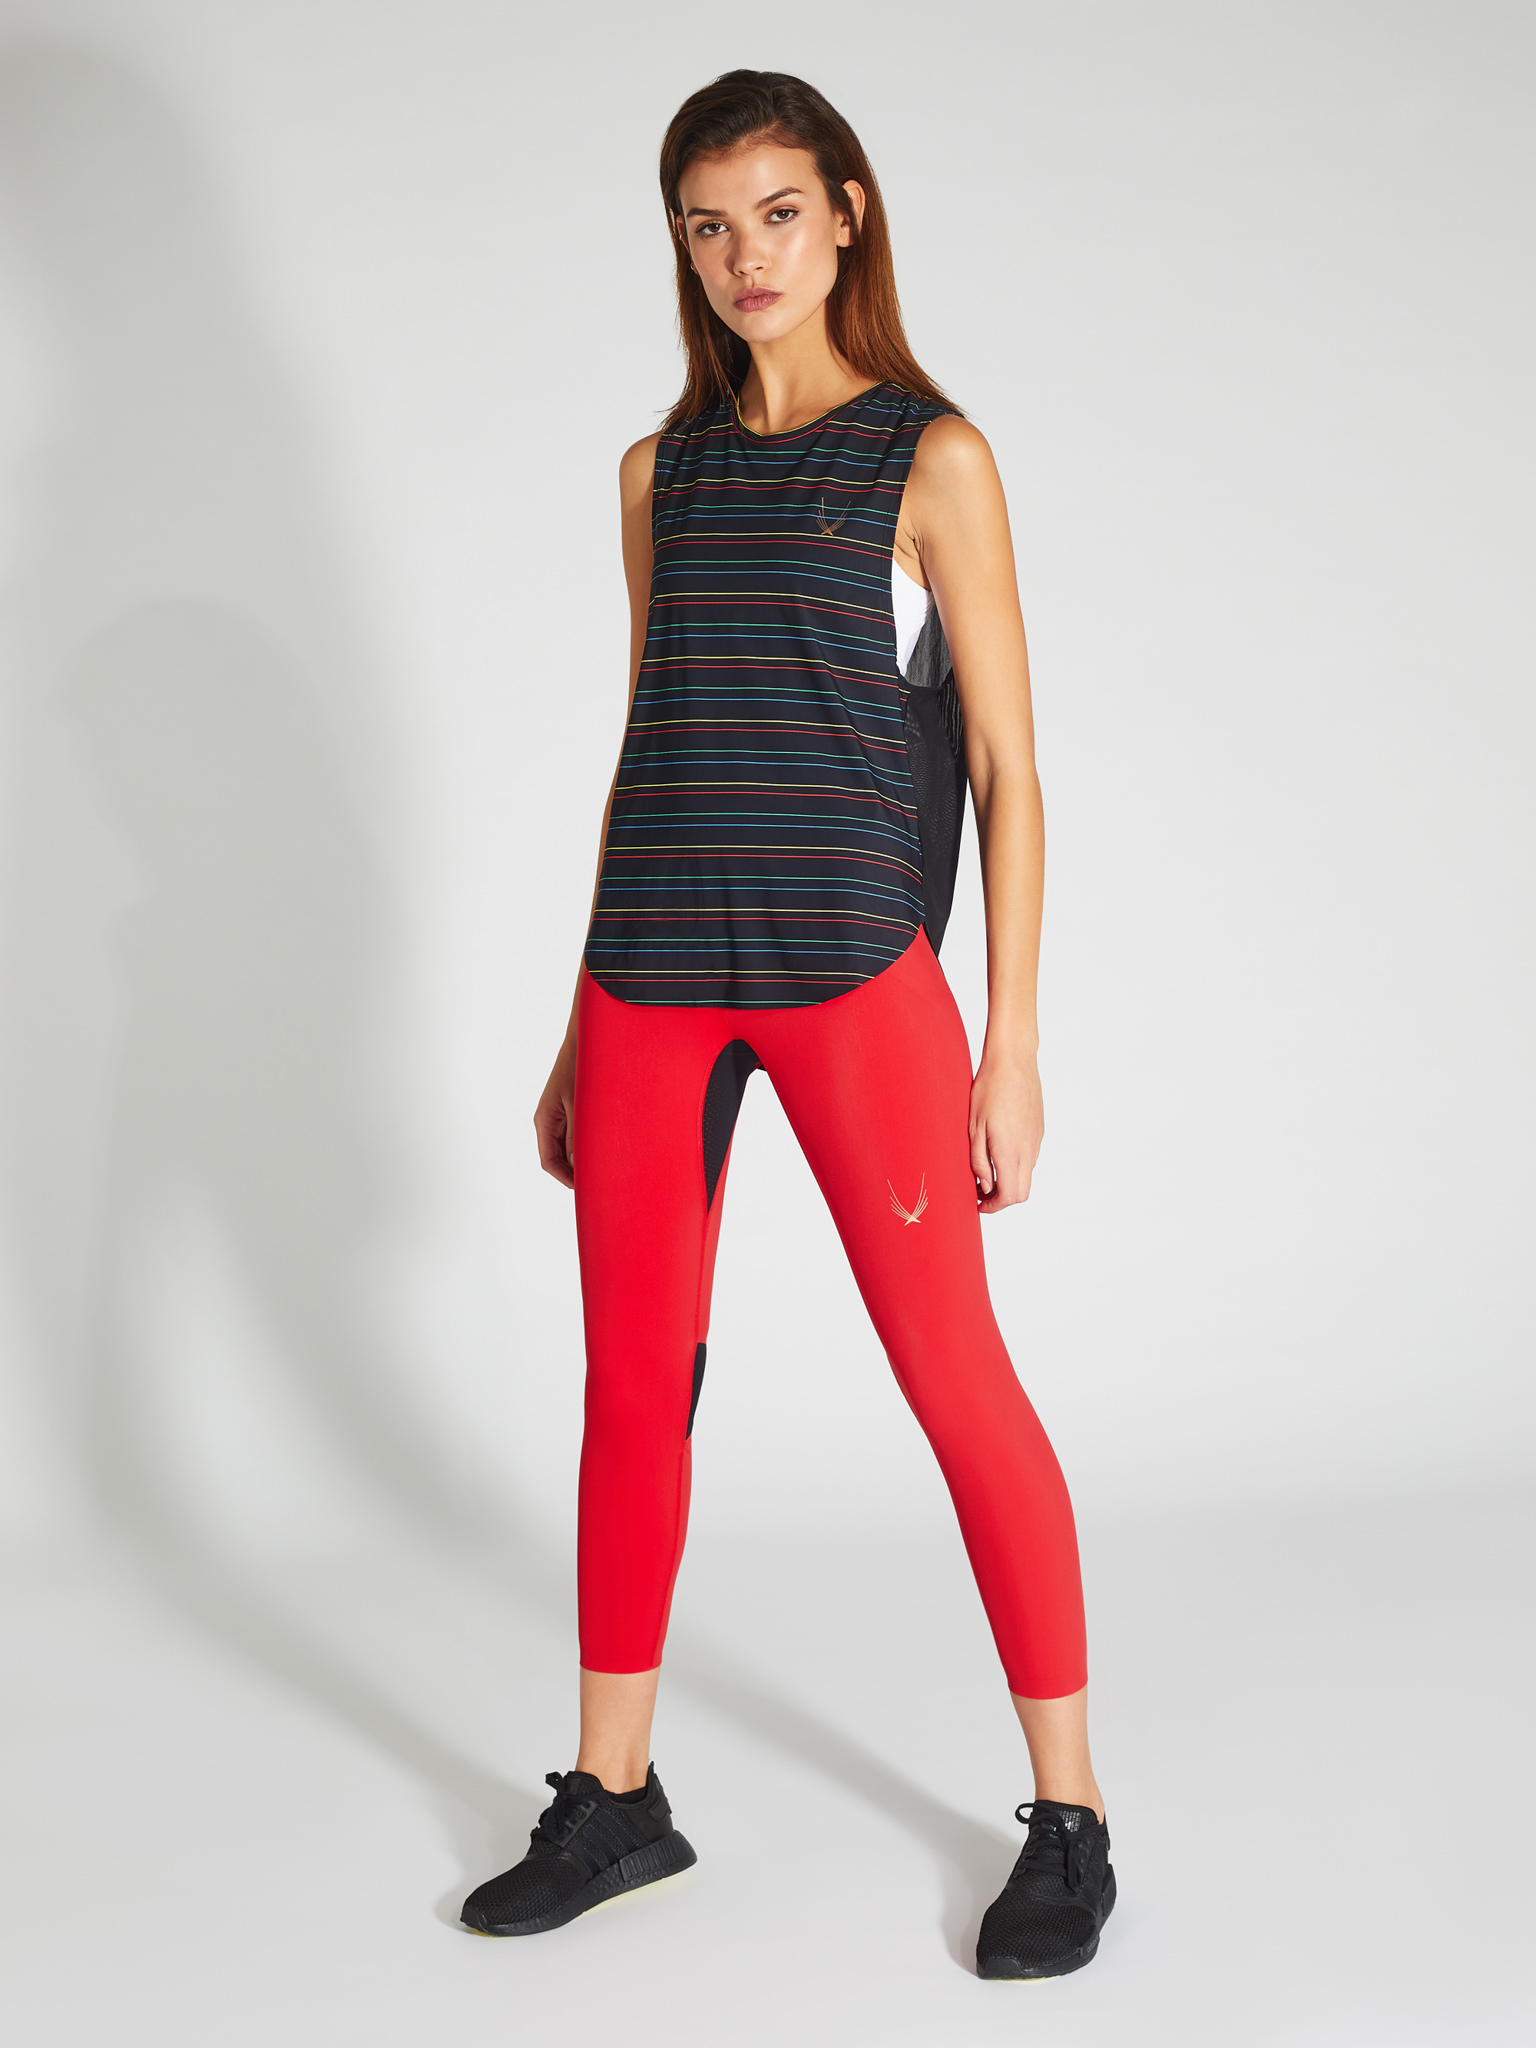 TILT_TANK_PINTSTRIPE_V2_LEGGINGS_RED555_1904.jpg